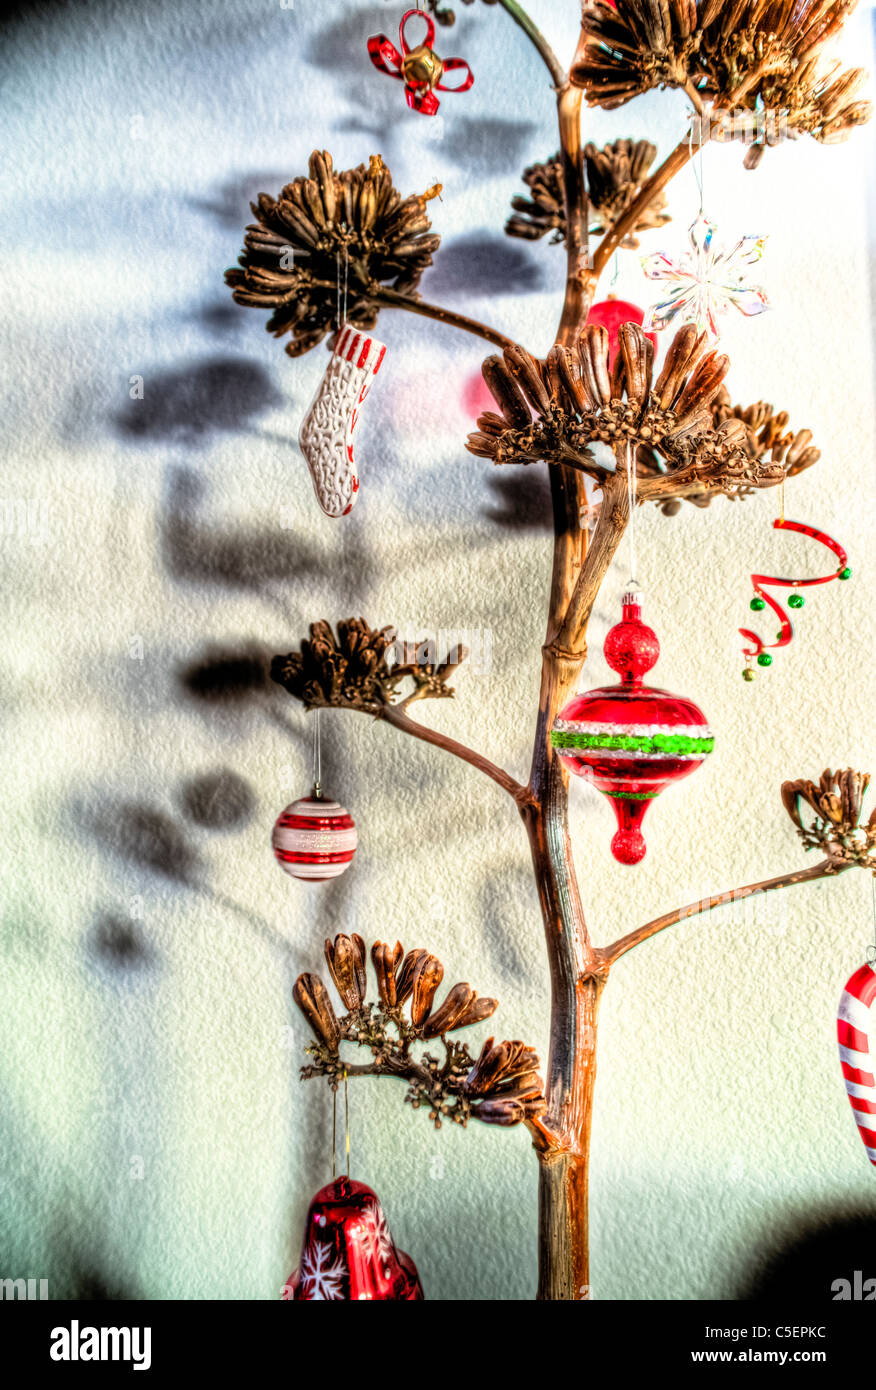 a dried agave century plant with christmas ornaments stock image